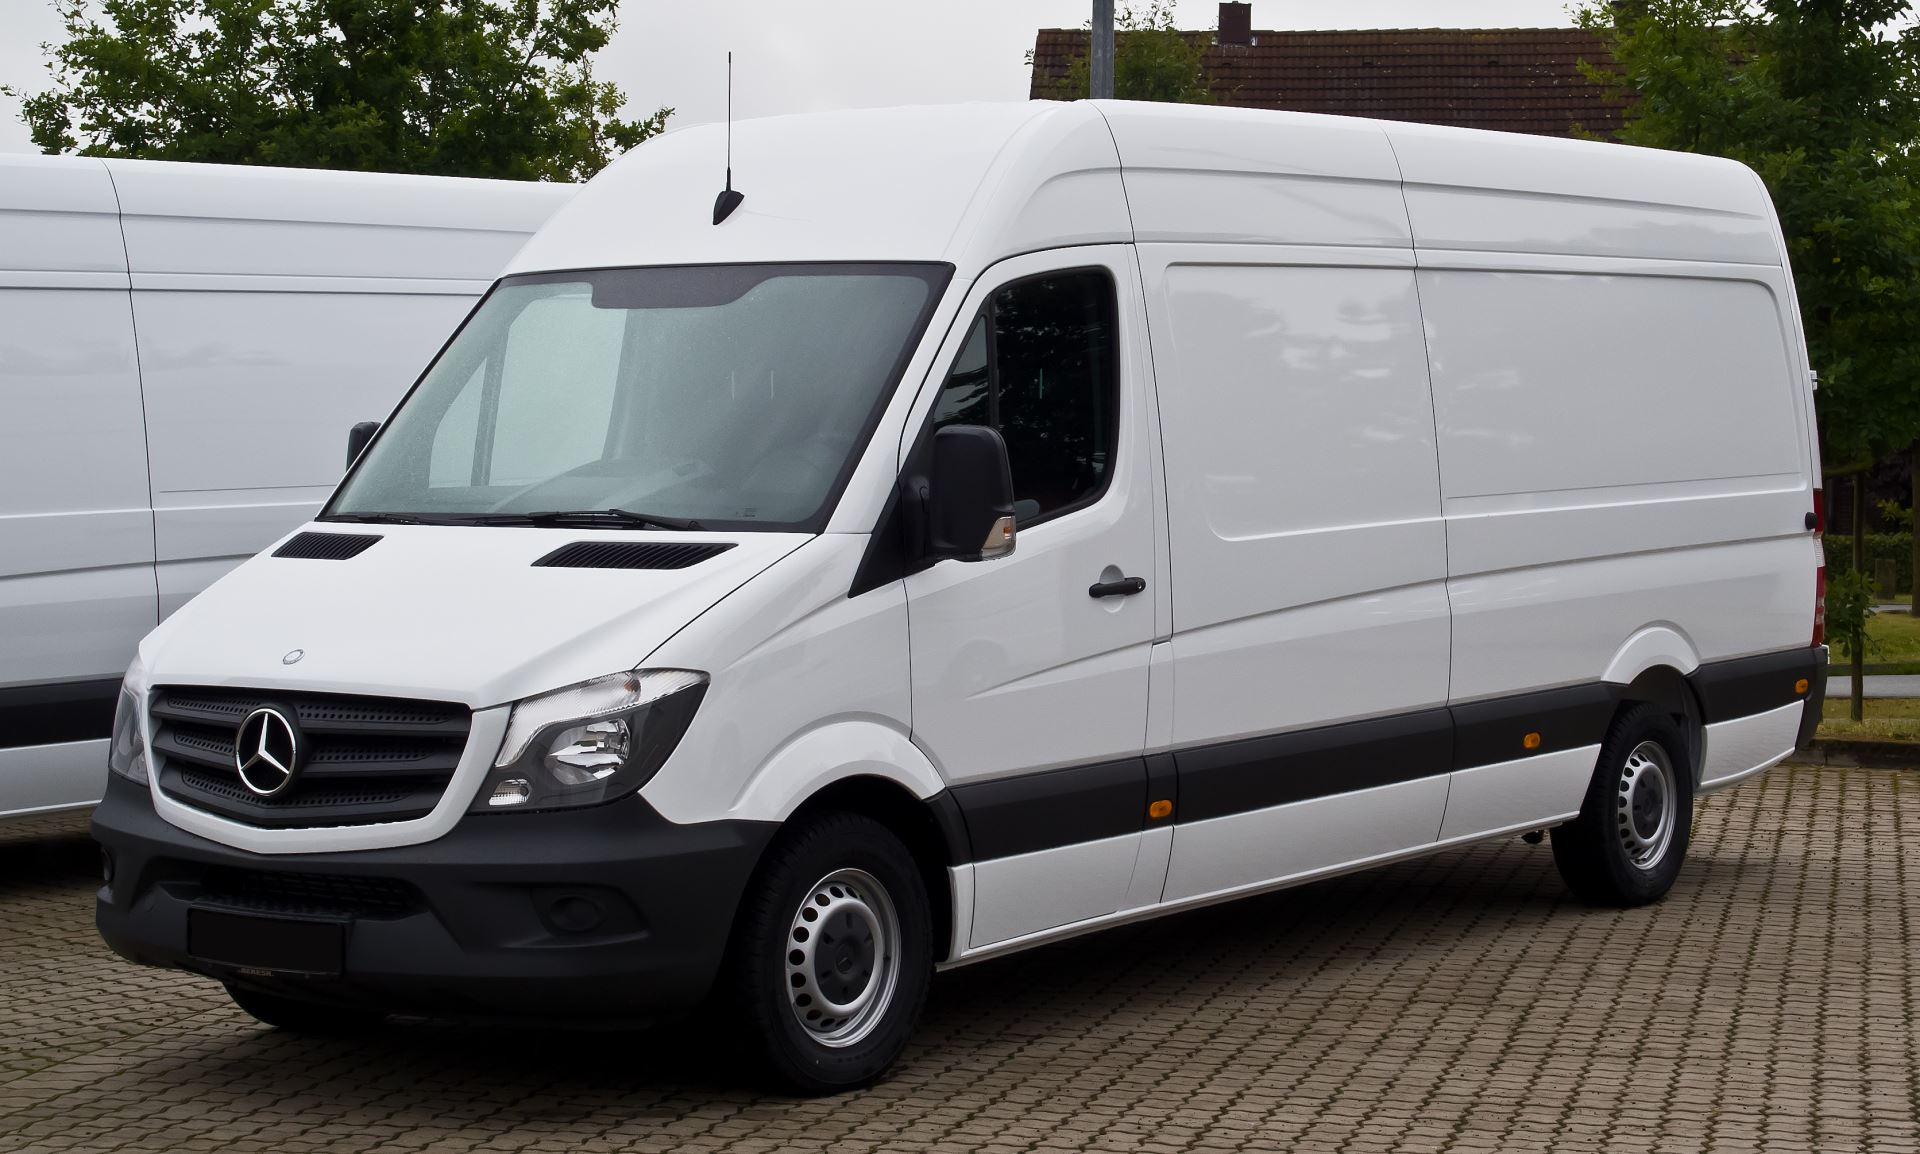 Sprinter Van Repair Knoxville - Local Experts in Knoxville